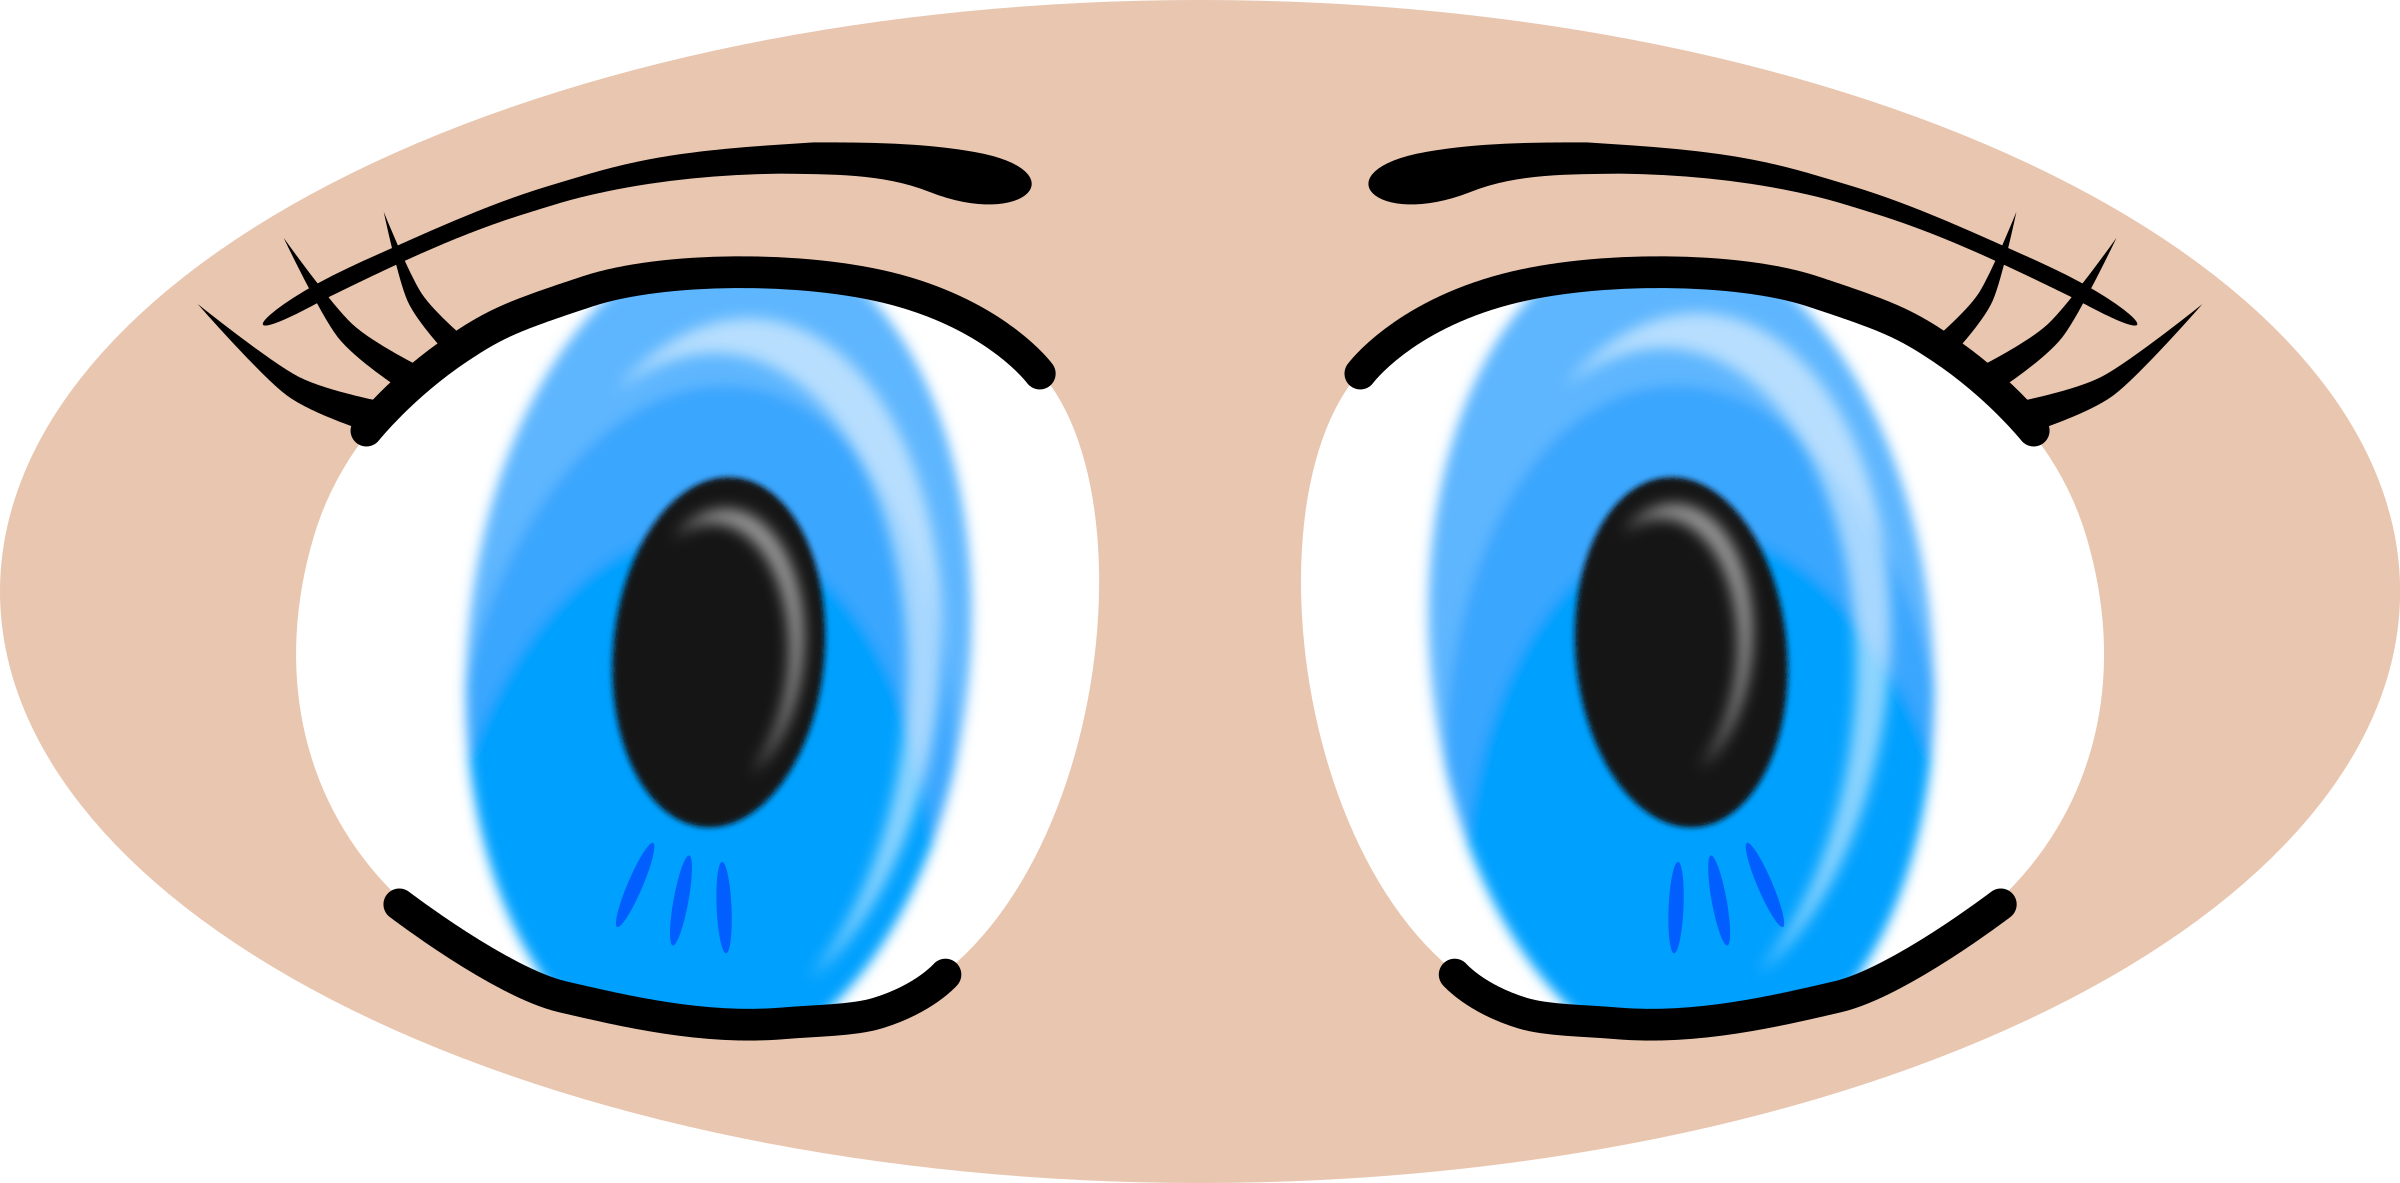 cartoon eye pictures free download best cartoon eye cartoon eyes clip art free spooky eye clip art free